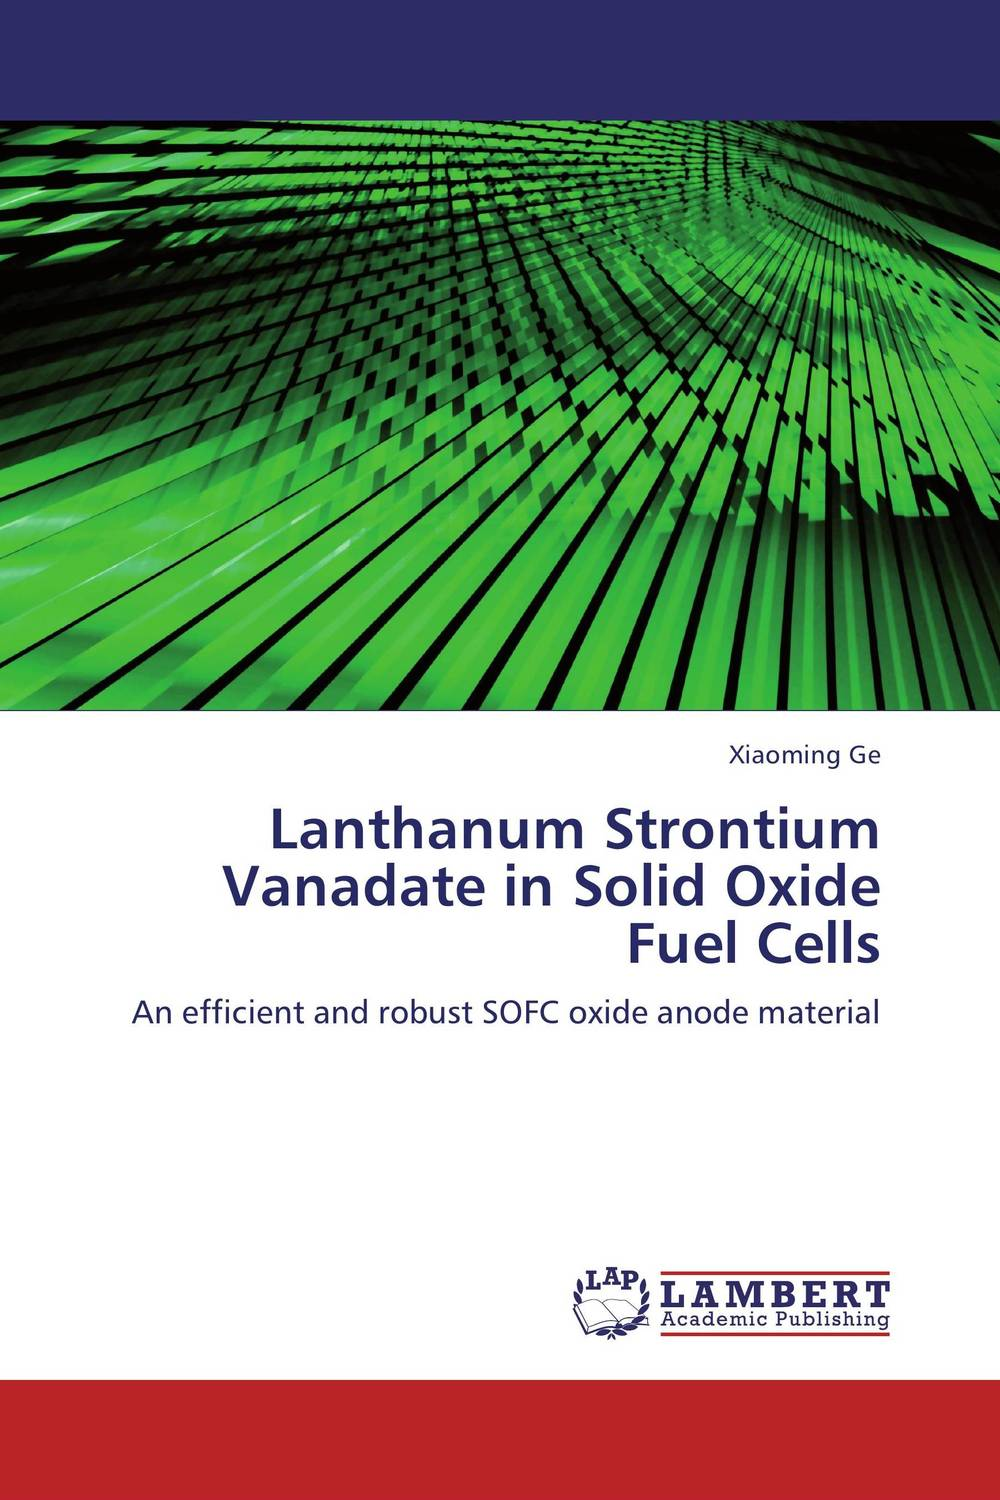 Lanthanum Strontium Vanadate in Solid Oxide Fuel Cells lifetimes of excitons in cuprous oxide